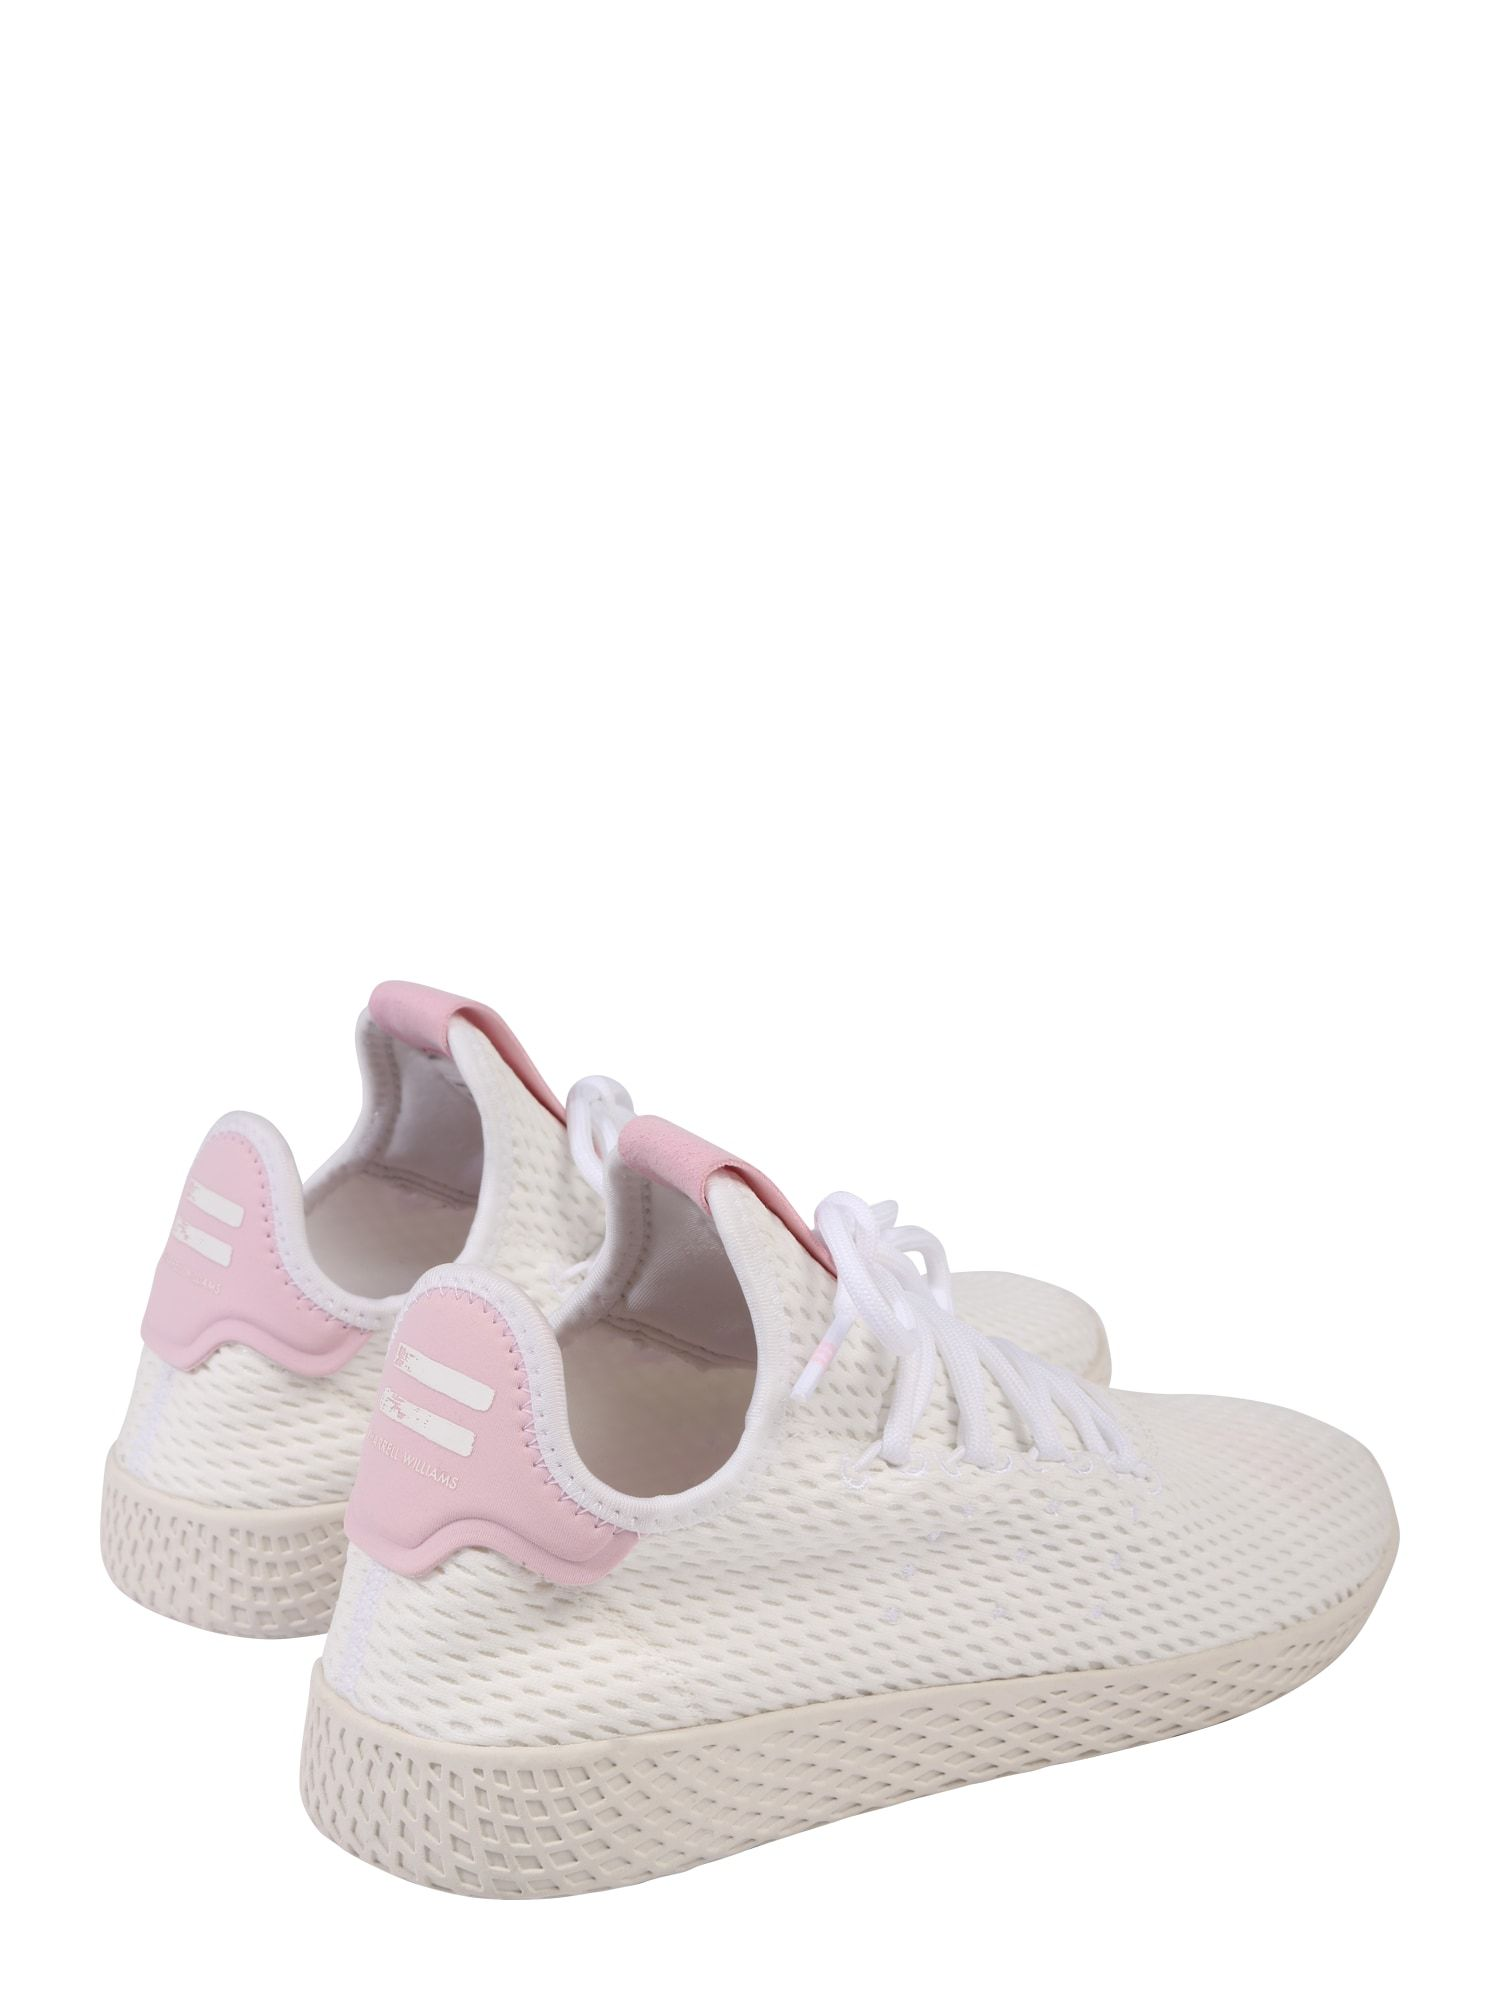 Adidas Originals Sneaker Tennis Damen Altrosa Weiss Grosse 37 37 5 Adidas Originals Sneaker Adidas Originals Sneaker